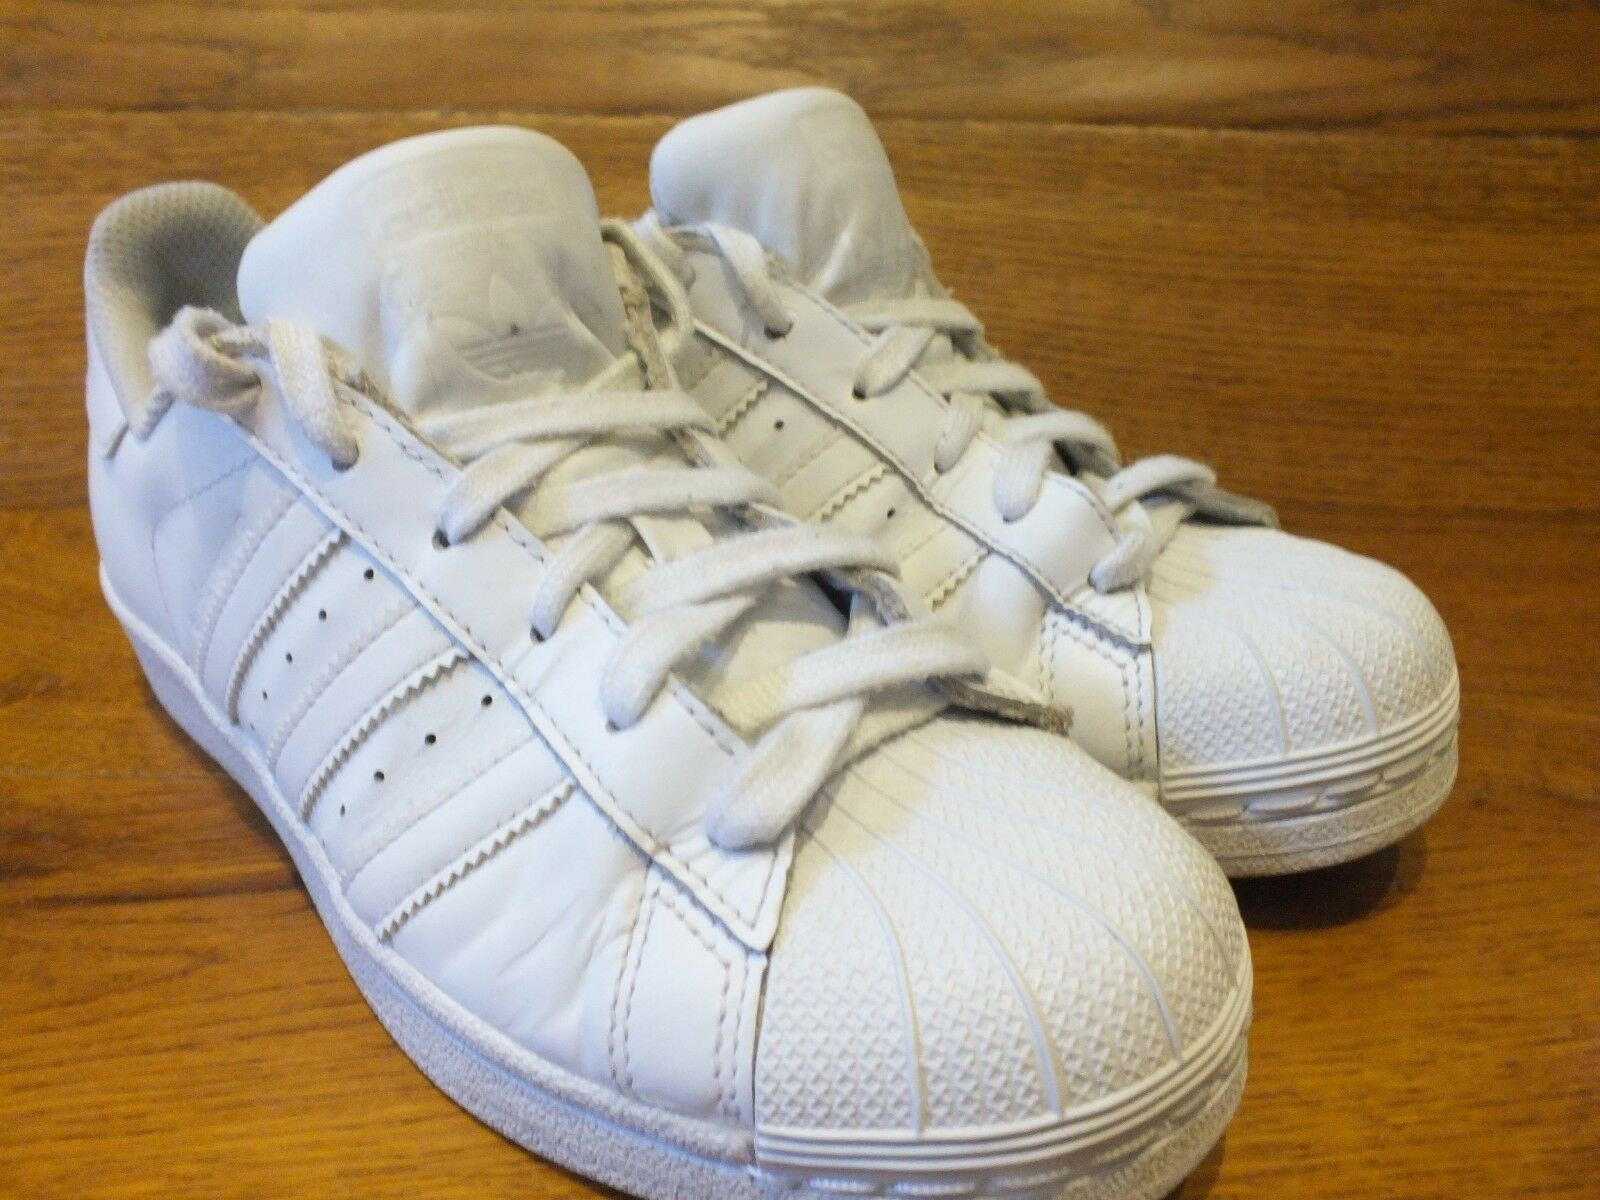 Adidas Originals superstar White Leather Casual Trainers